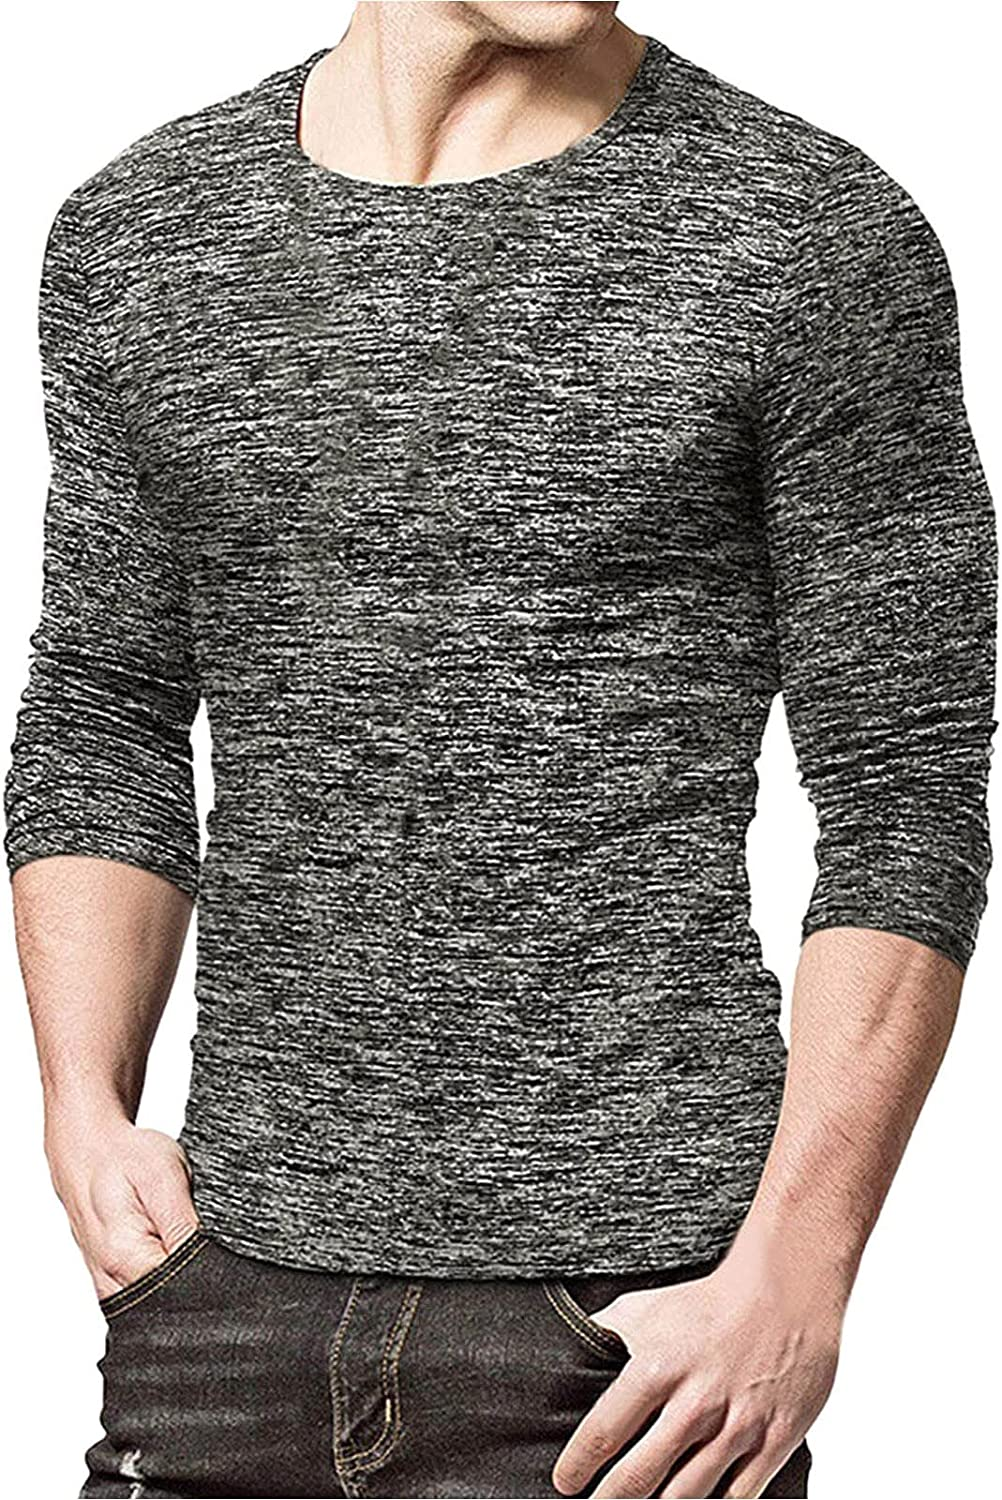 Huangse Men's Summer Solid Color 3/4 Sleeve T-Shirt Quick Dry Round Collar Sportswear Running Jogging Fitness Tee Tops